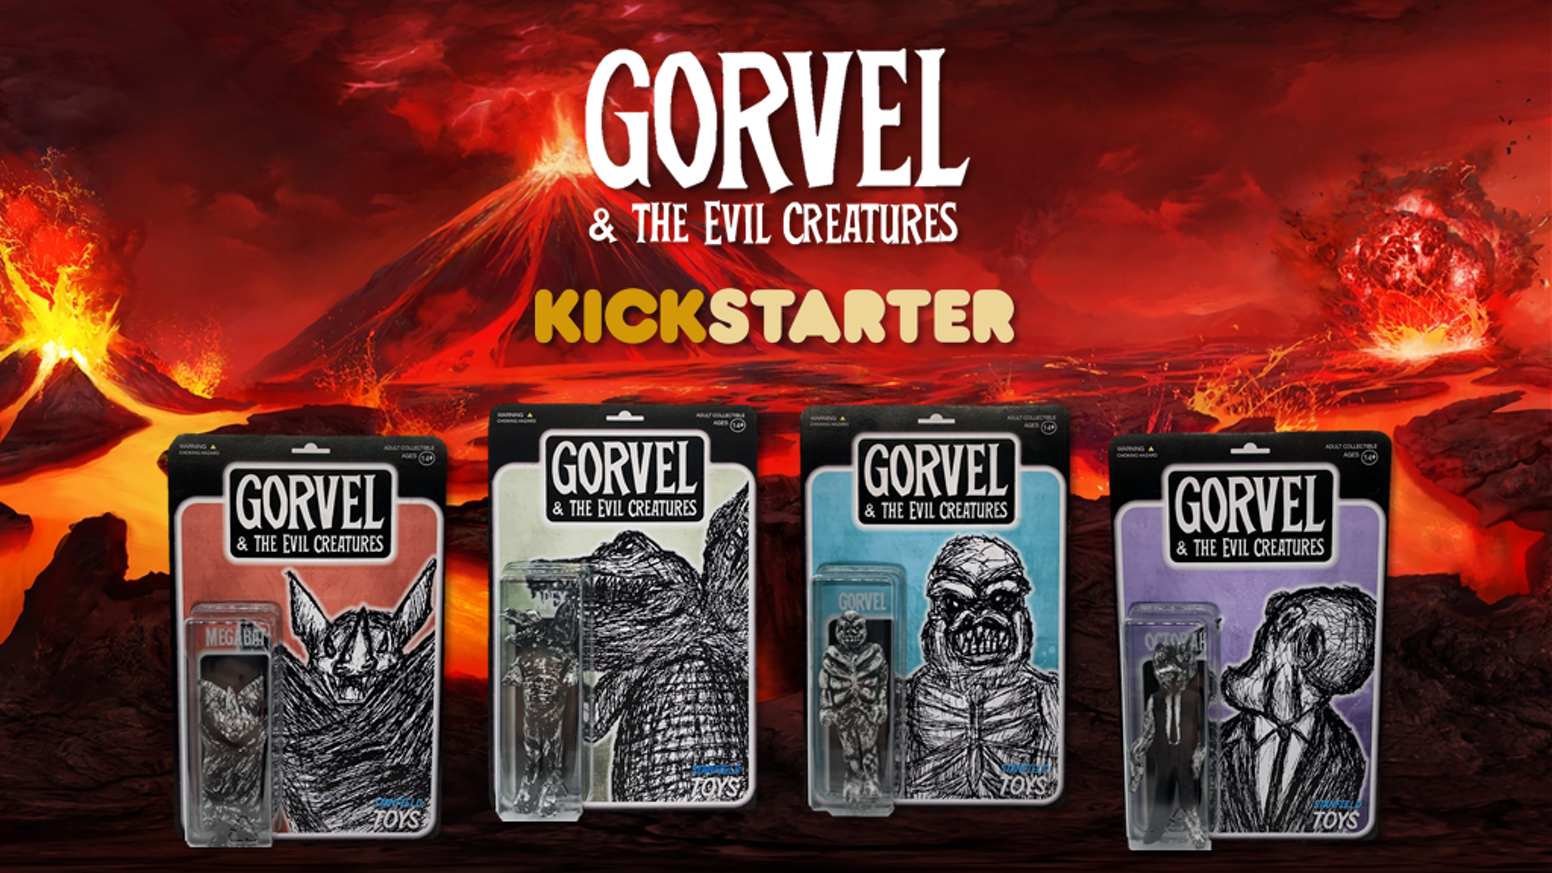 EXCLUSIVE LAUNCH OF THE TOYS FROM HELL!